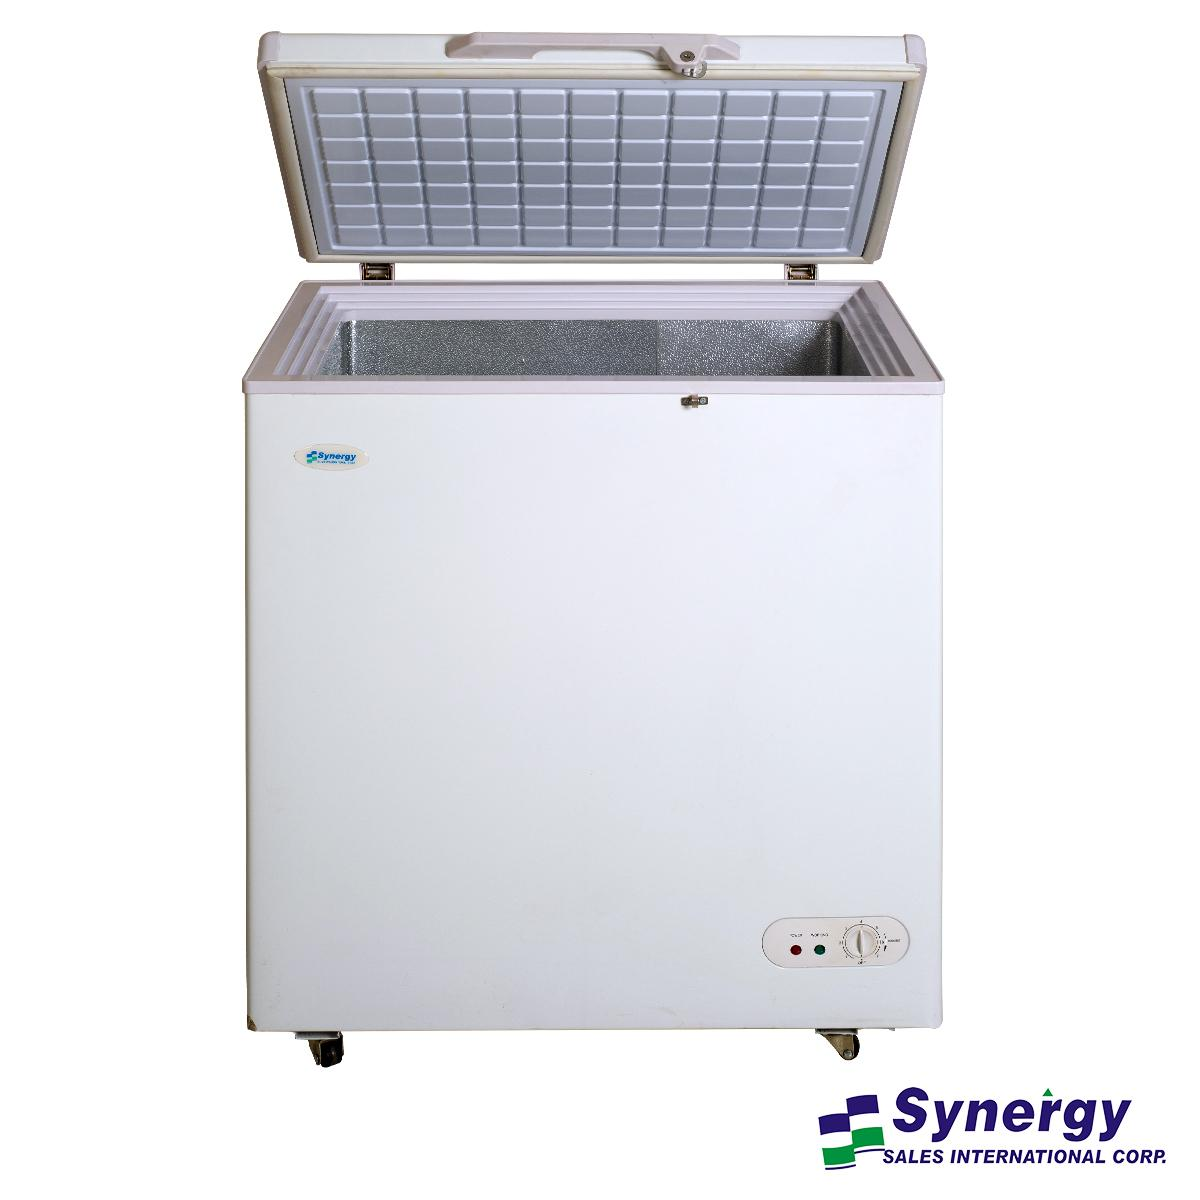 Small Stand Up Freezer Synergy Chest Freezer 5 Cubic Ft